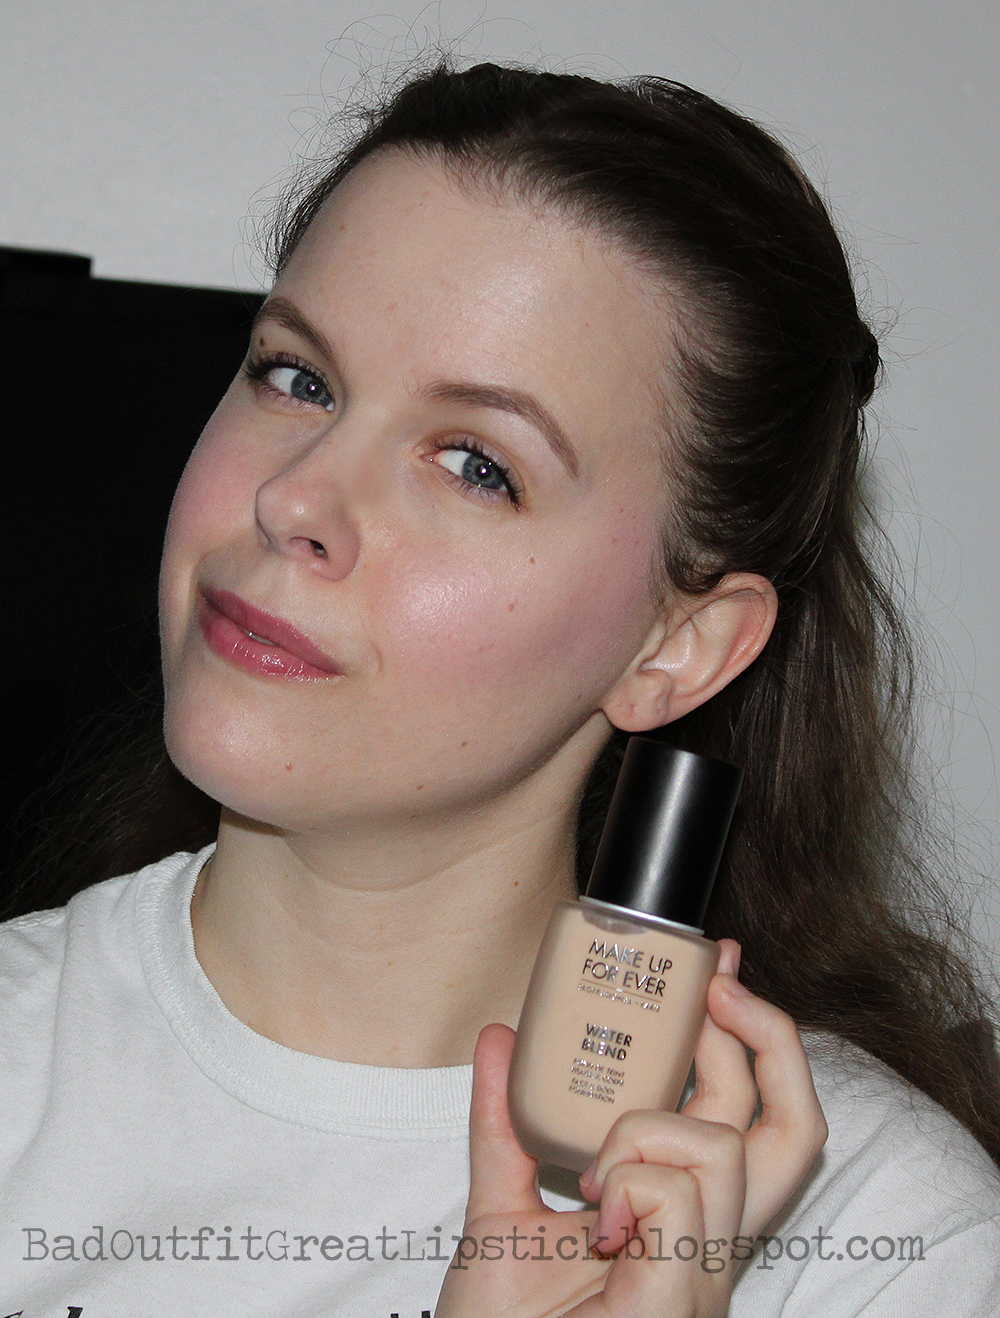 Bad foundation makeup